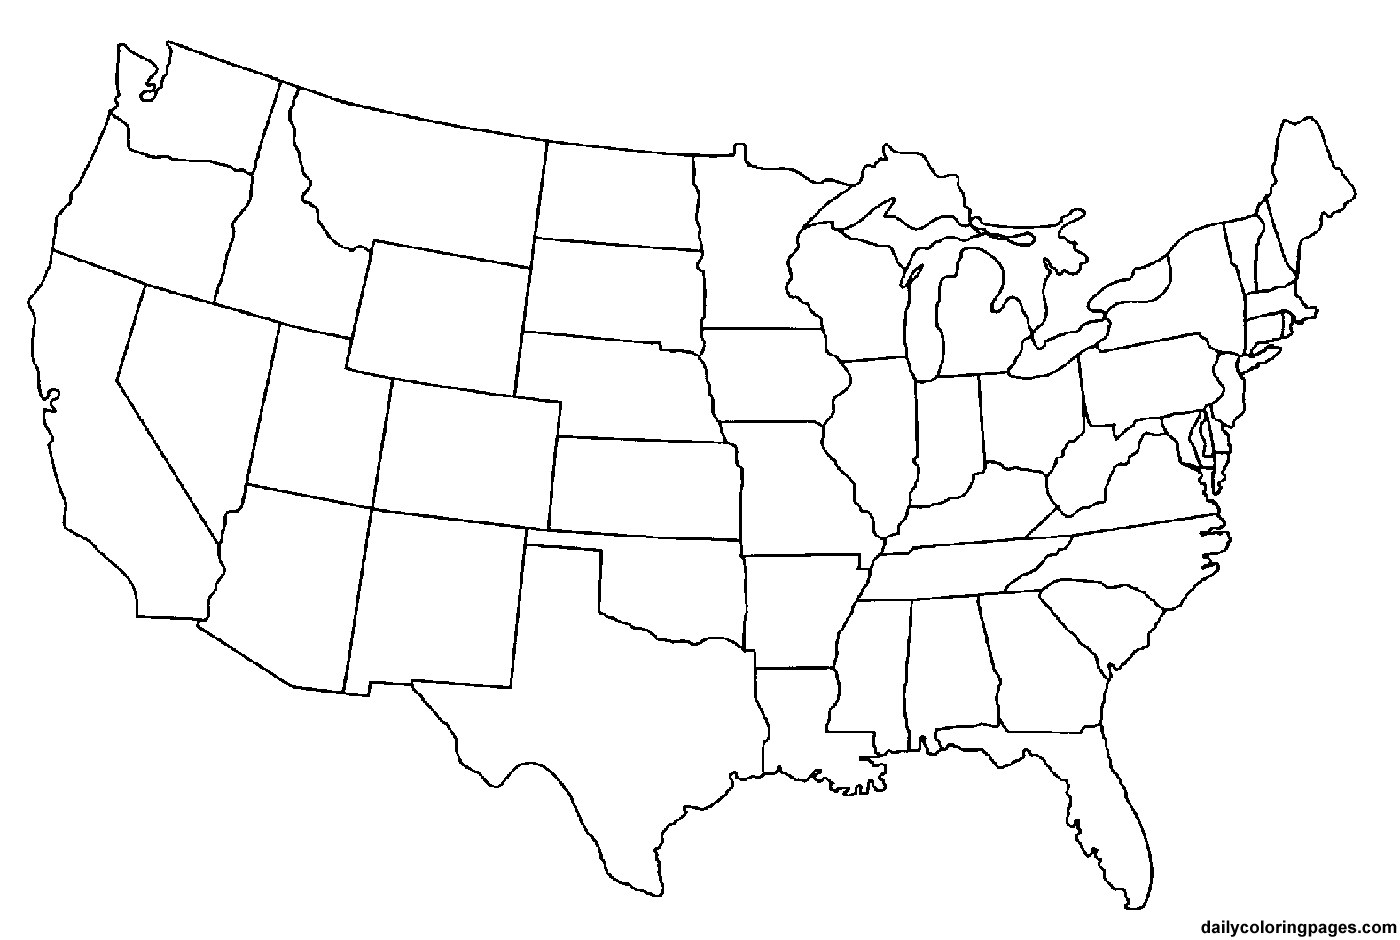 united states map coloring page us map coloring pages best coloring pages for kids states page coloring united map